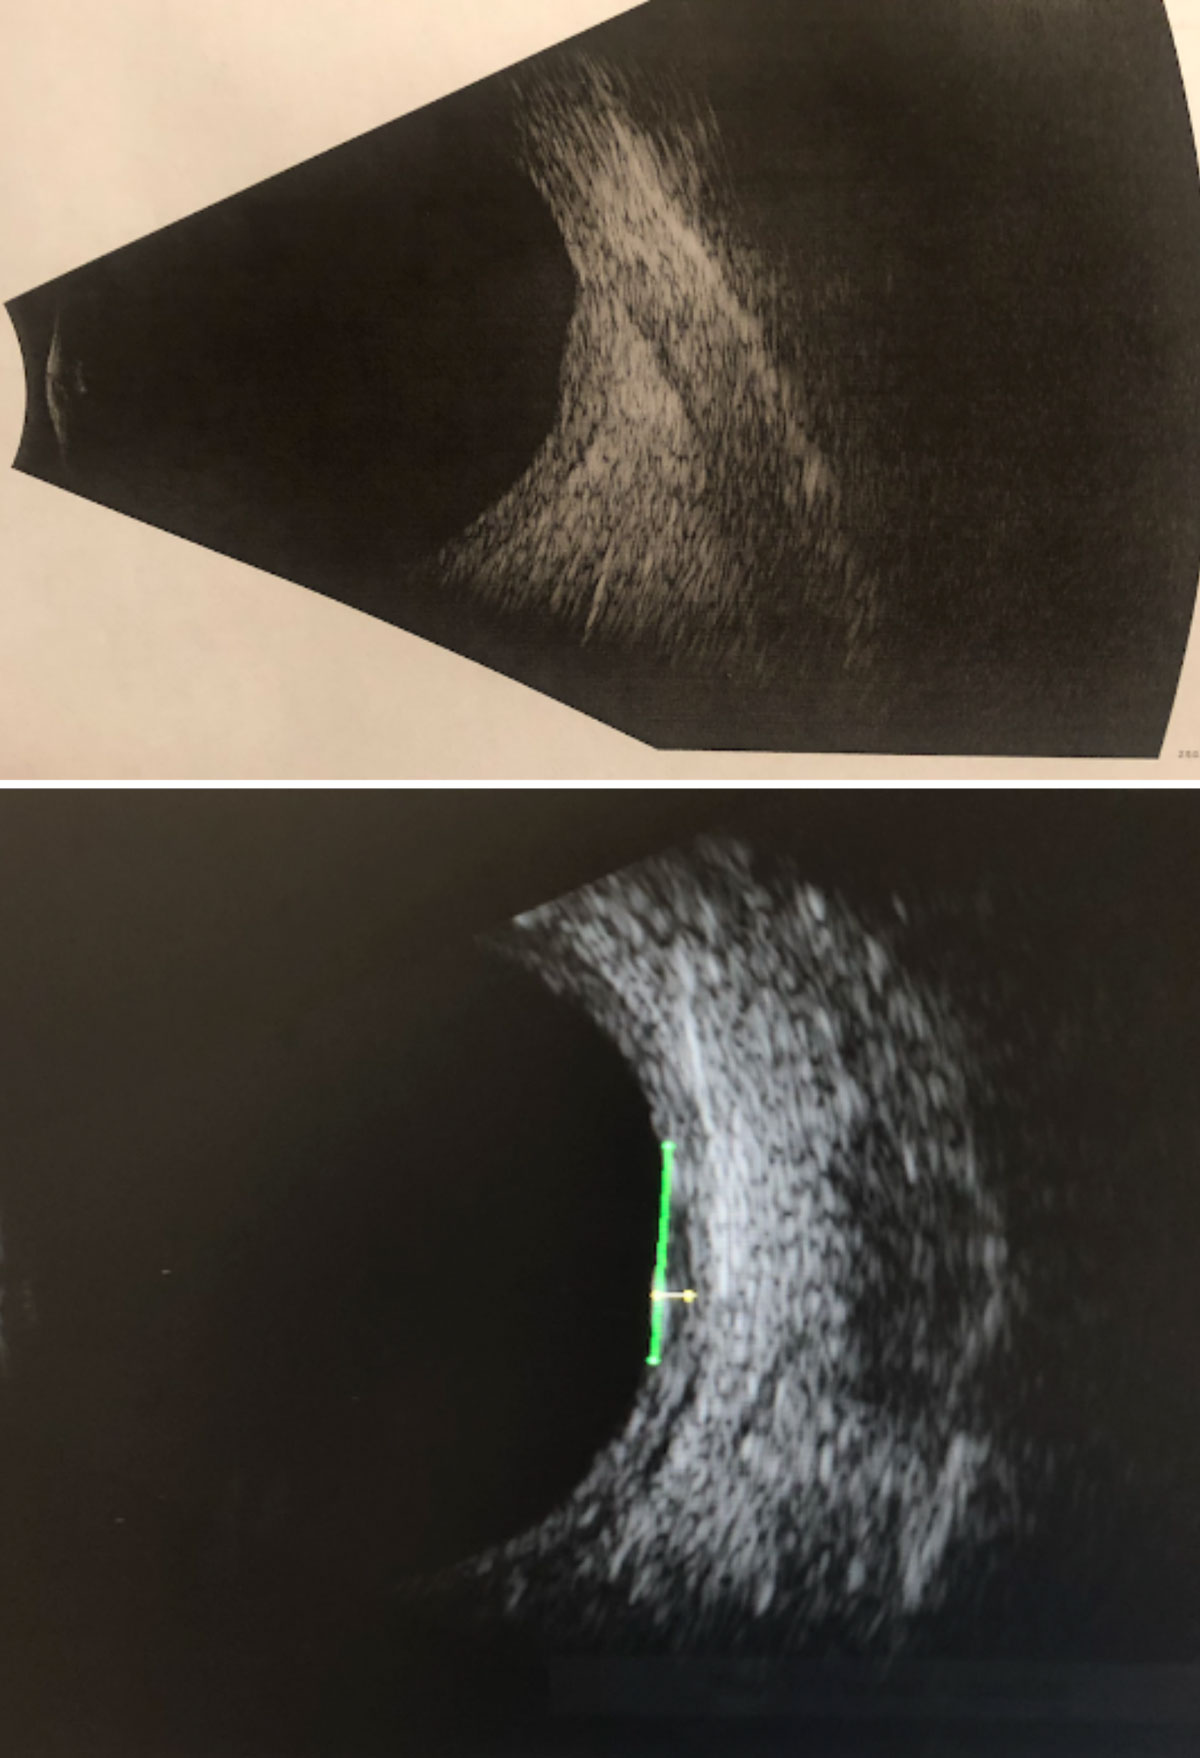 Fig. 11. B-scan ultrasonography through the suspicious lesion in the left eye without measurements (top) and with measurements (bottom): High internal reflectivity; transverse = 6.76mm; longitudinal = 5.92mm; horizontal (thickness) = 1.11mm.